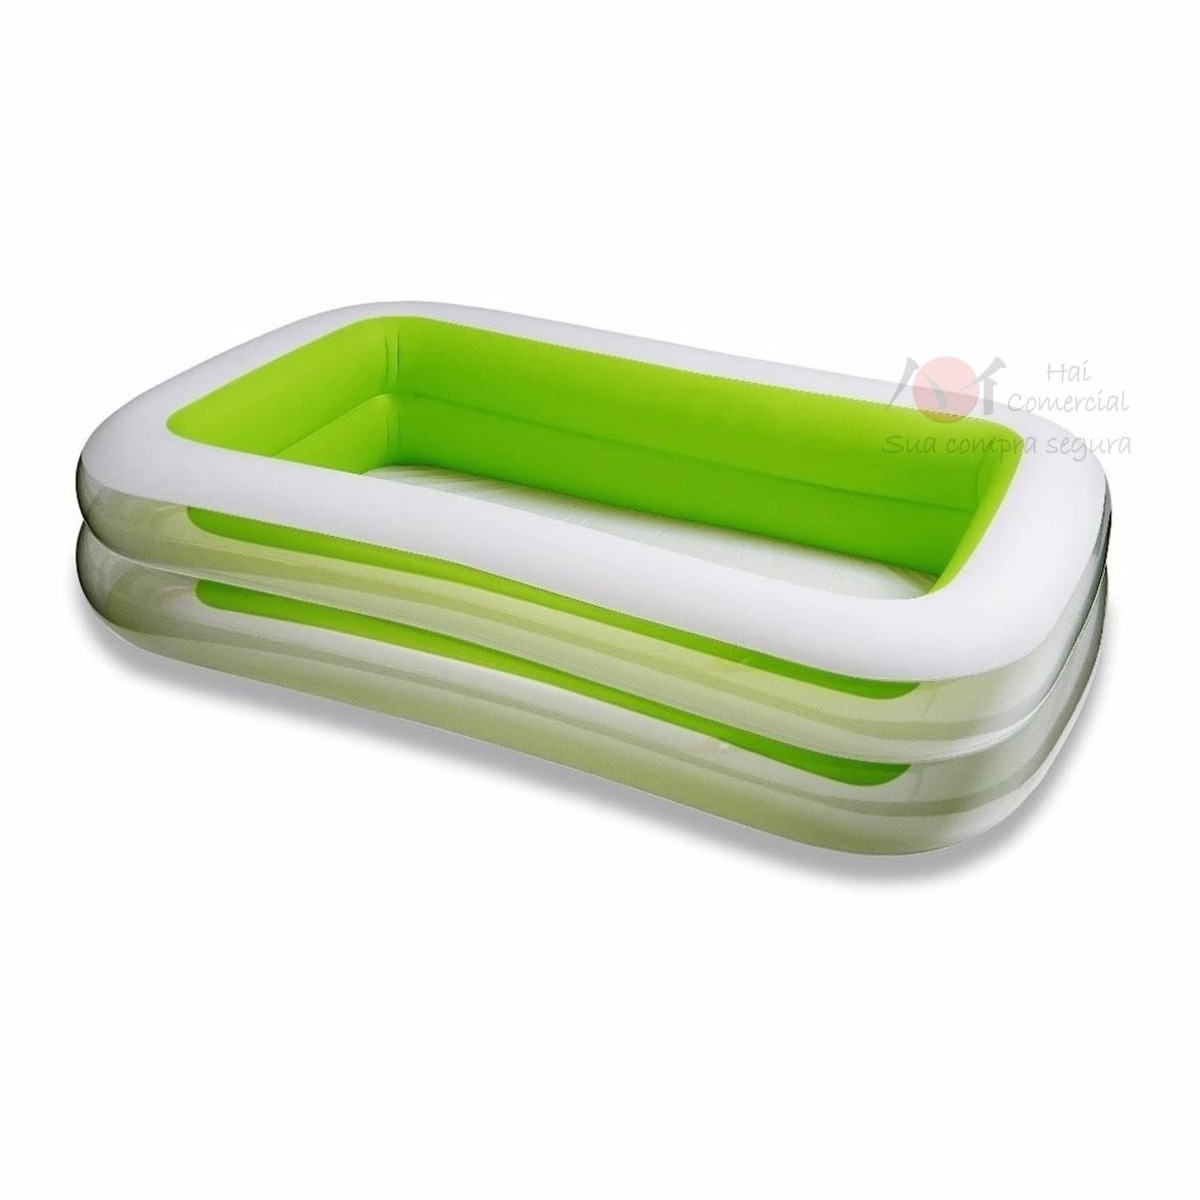 Piscina Intex Familiar Piscina Inflável Retangular Familiar Intex 749 Lts 43 Bomba